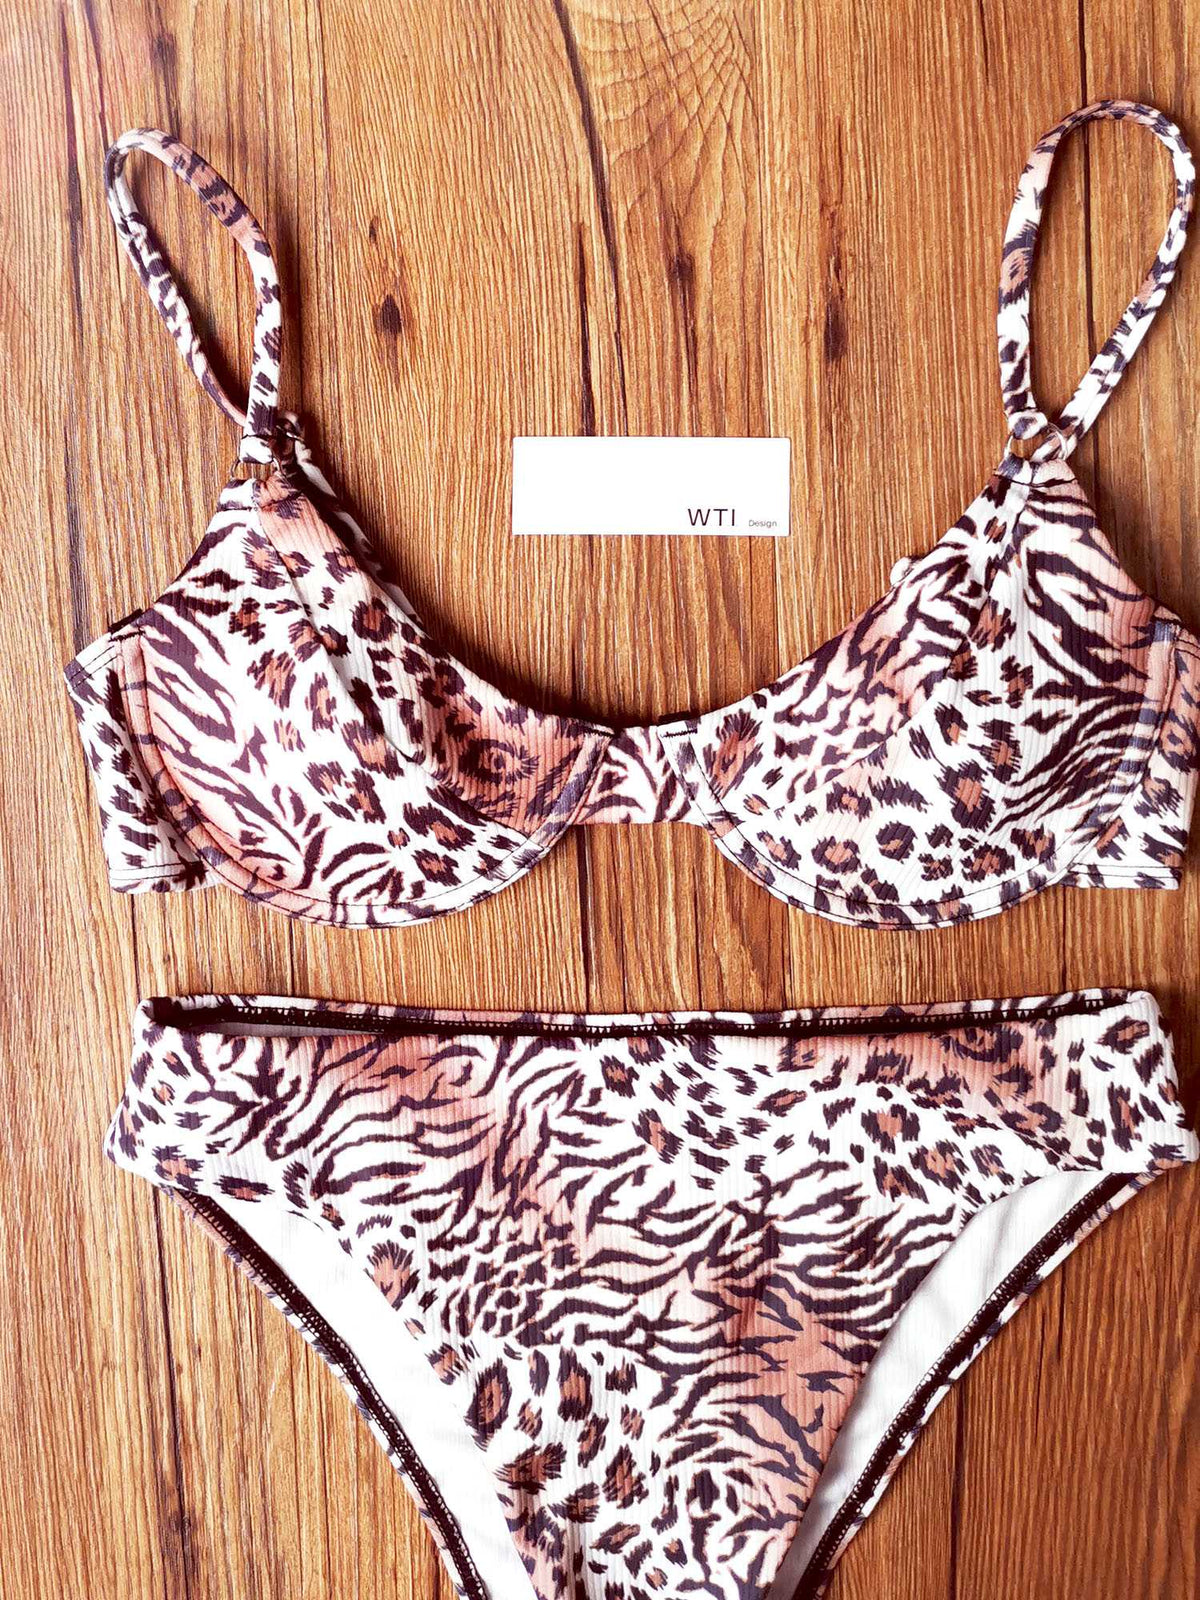 Tiger Animal Ribbed Underwire High Waist Bikini Swimsuit - worthtryit.com